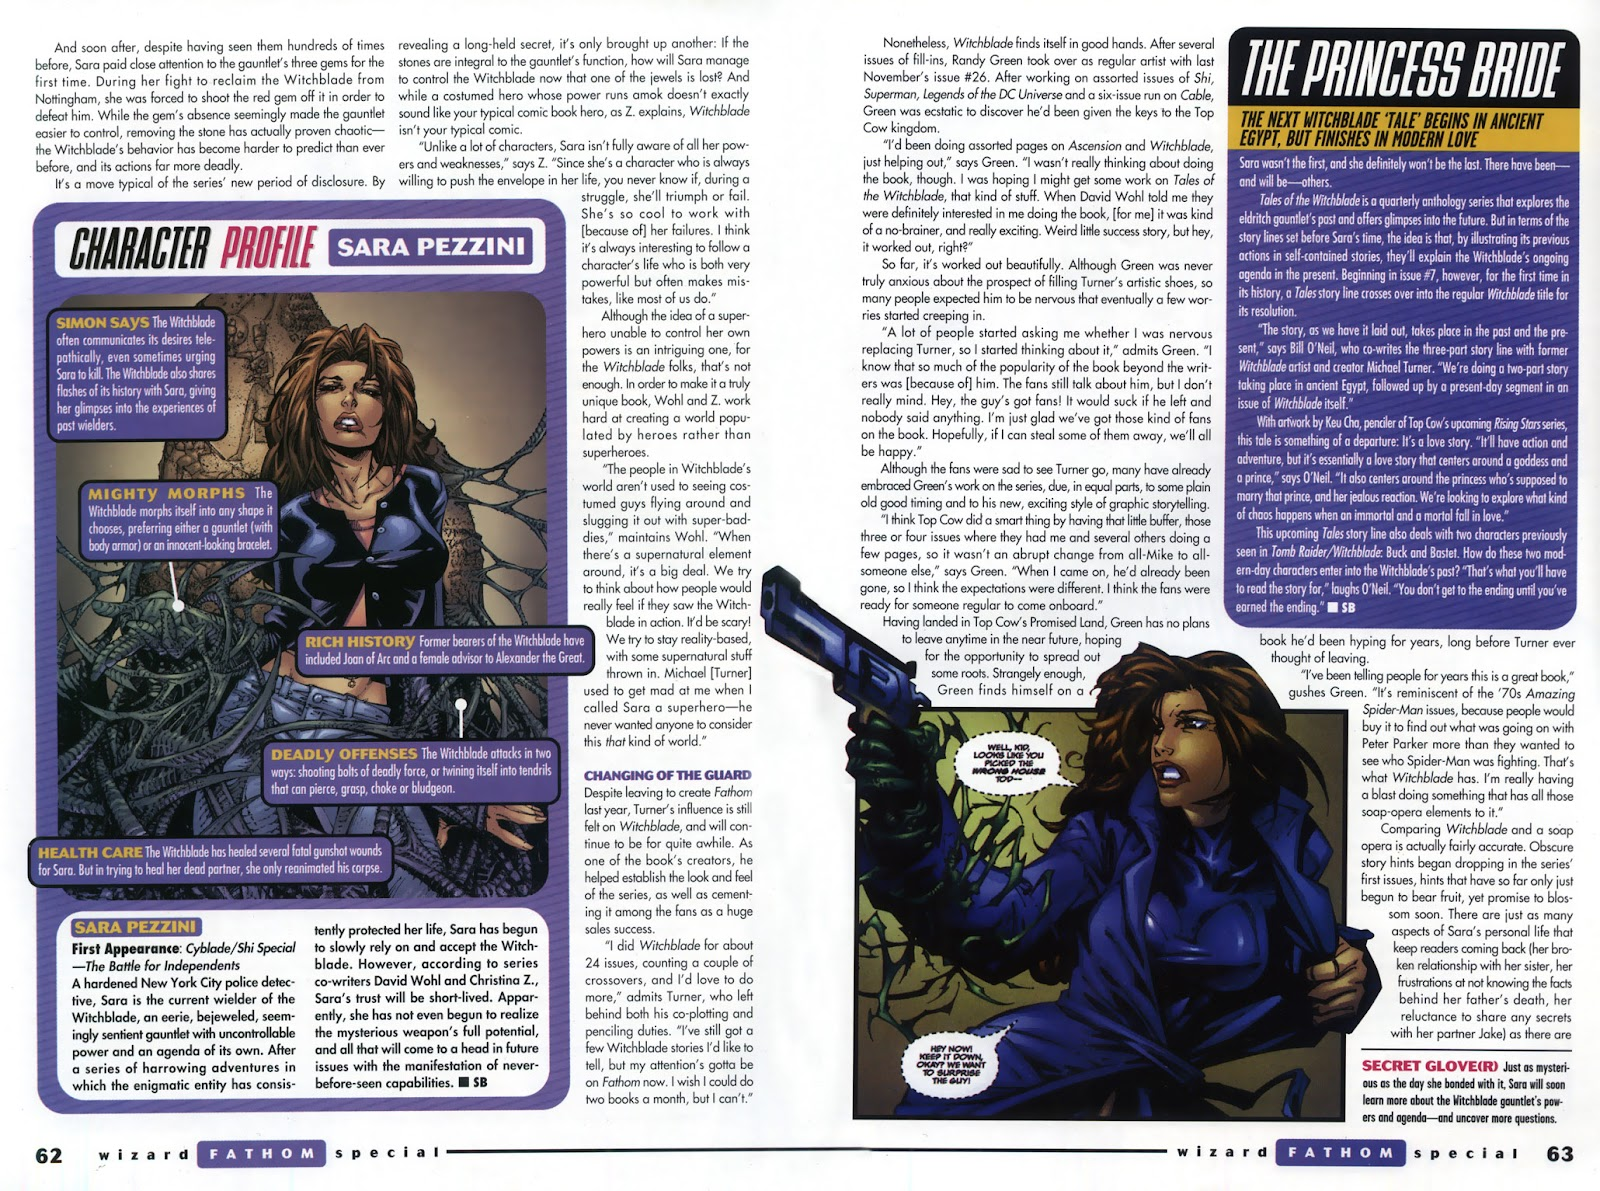 Read online Fathom Special comic -  Issue # Full - 46